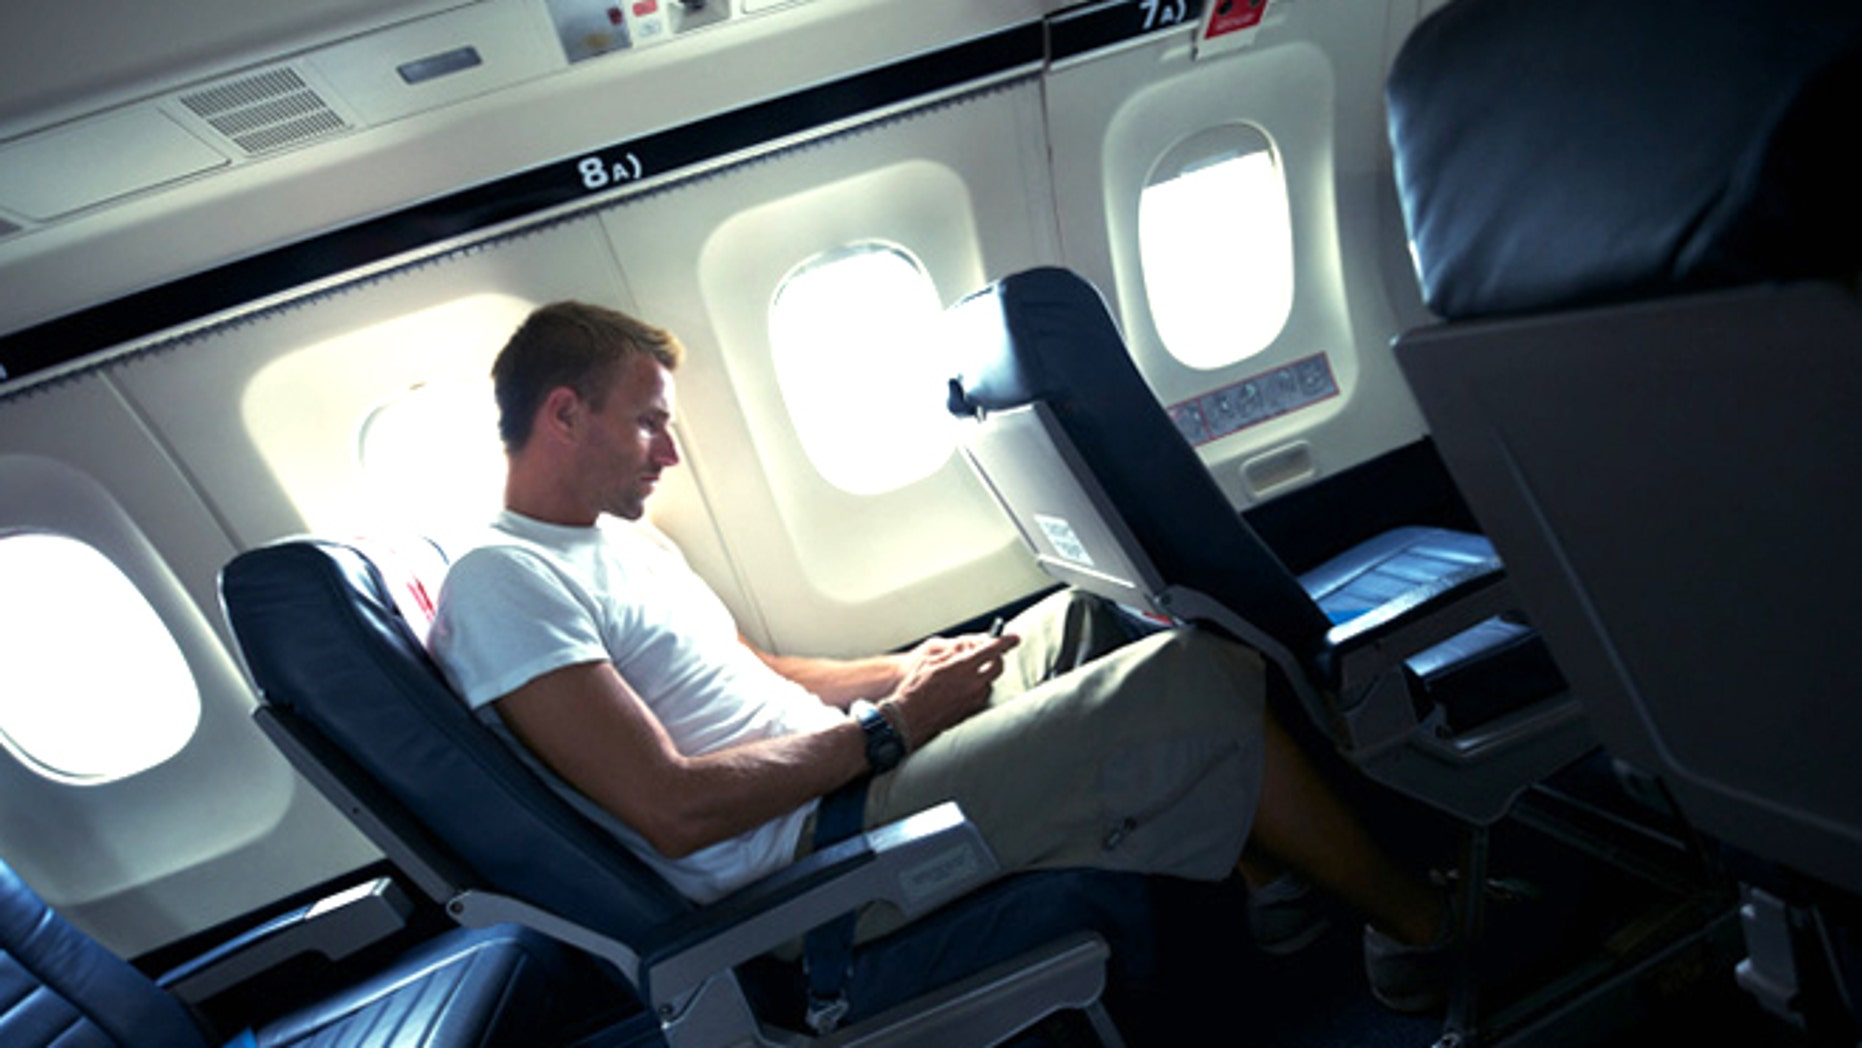 A Federal Aviation Administration advisory committee recommended Thursday that airline passengers be allowed to use smartphones, tablets, e-readers and other personal electronic devices during takeoffs and landings.  Now it goes to the FAA for consideration.